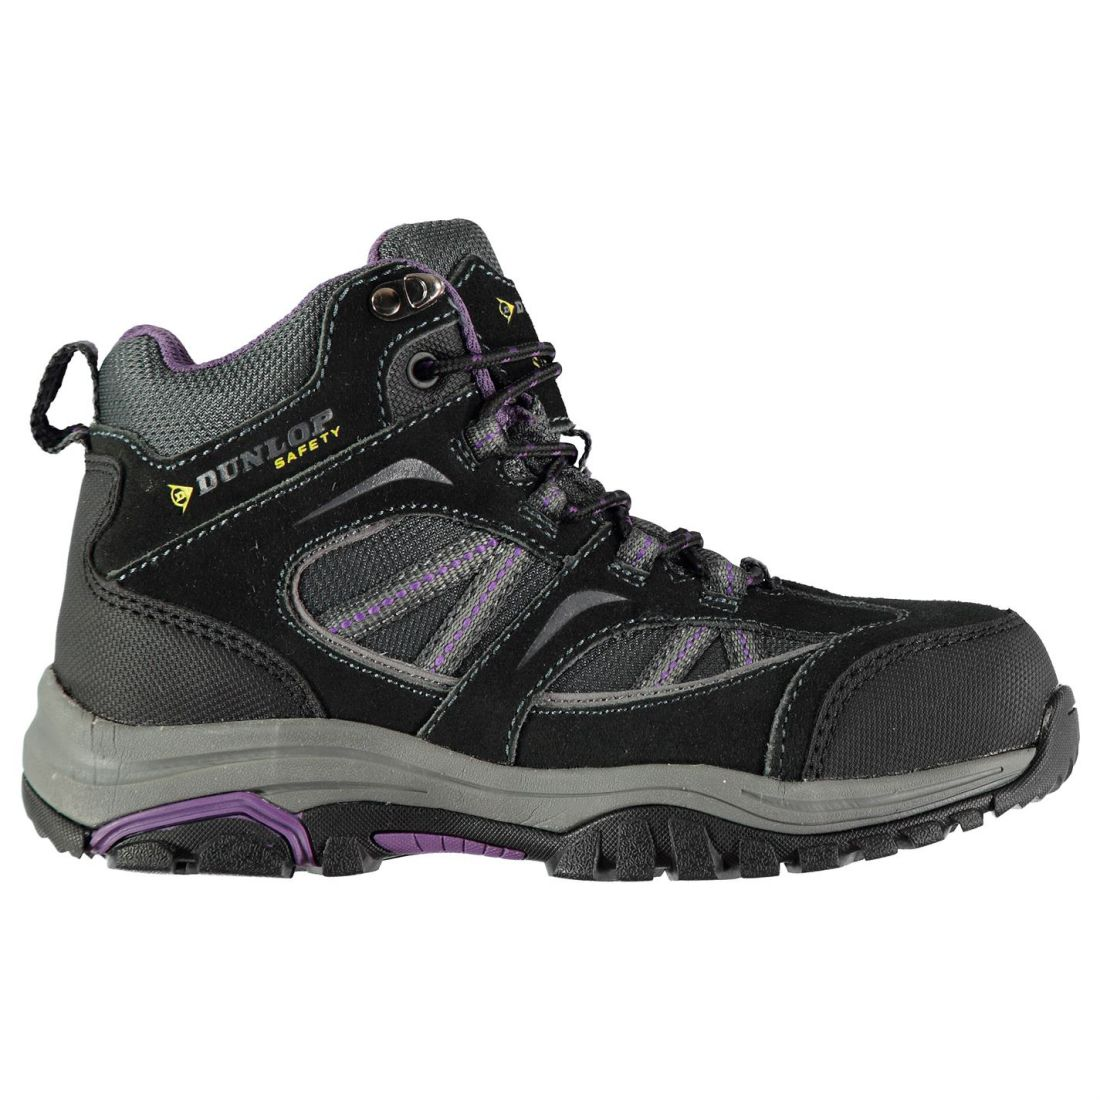 Dunlop Colorado Securety Boots Ladies Laces Fastened Lightweight Shock Absorbing